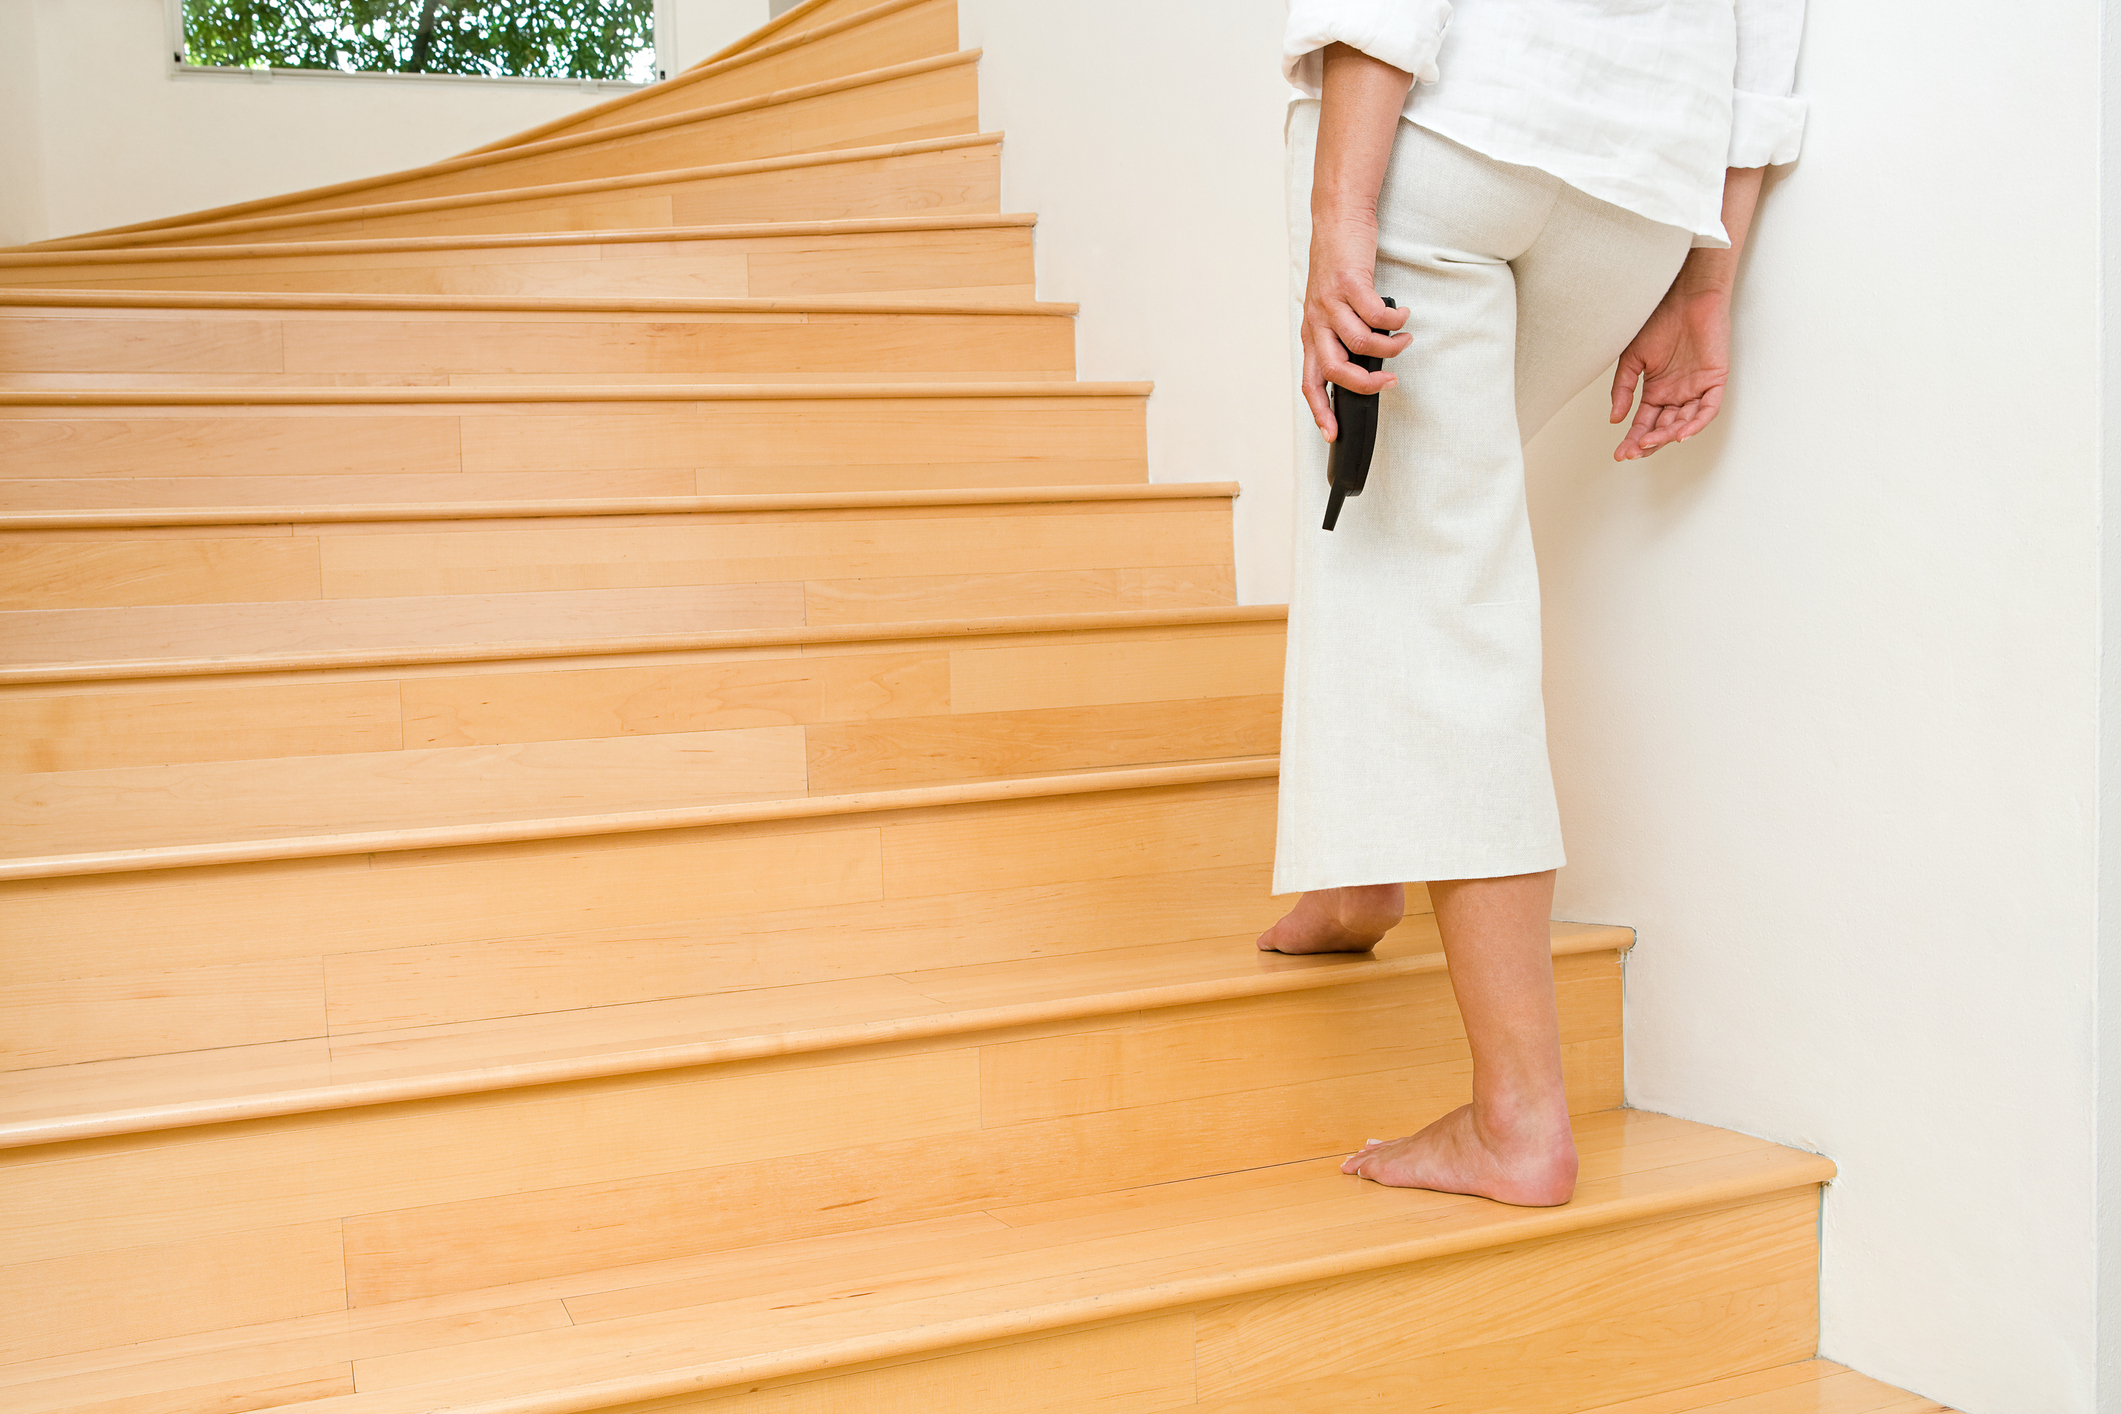 What a flight of steps can tell you about your heart